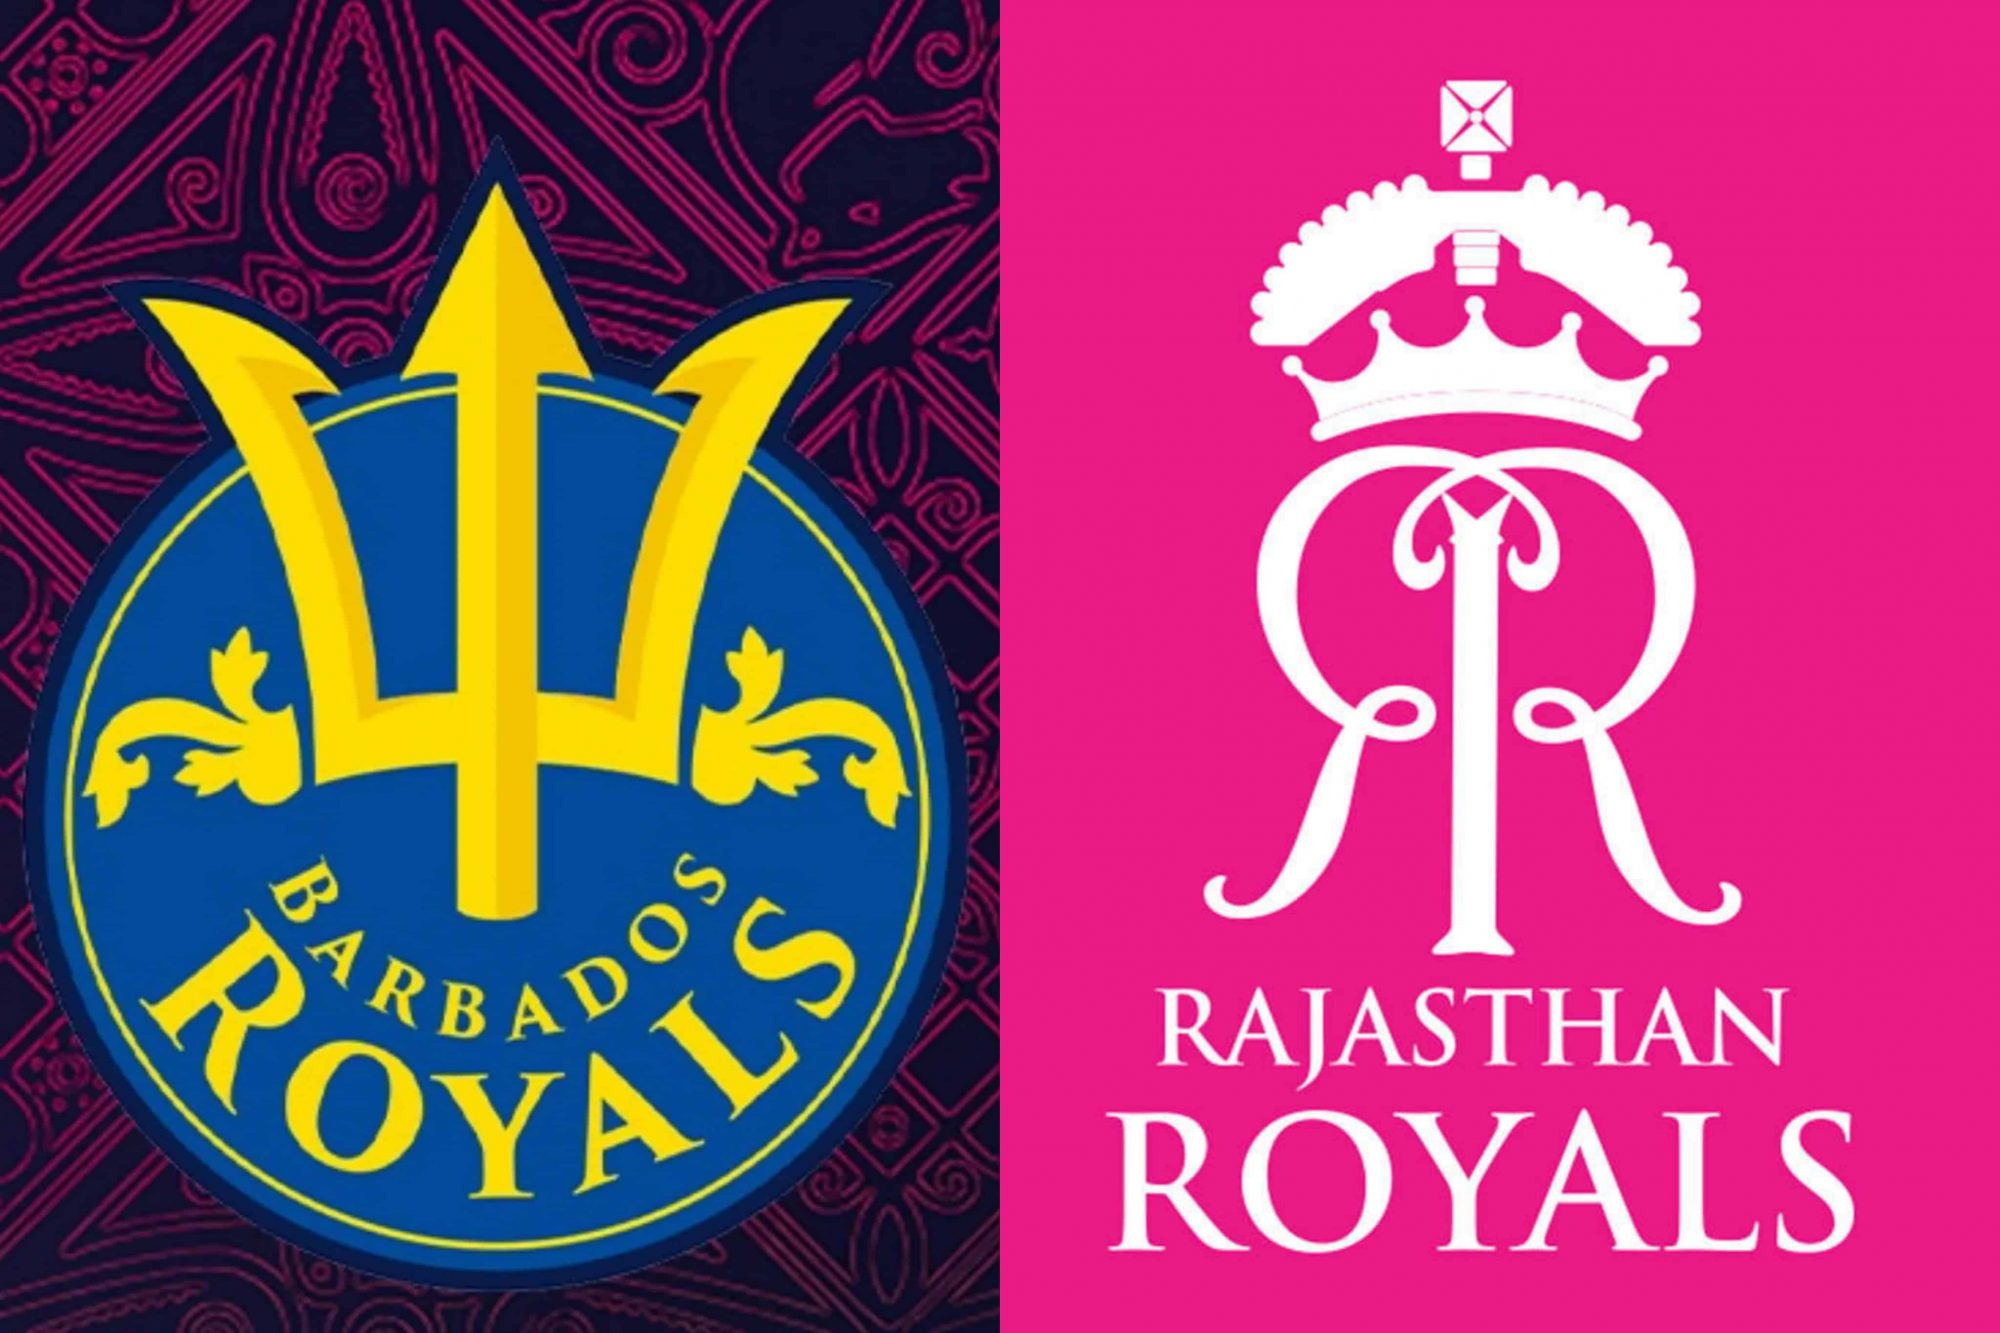 Rajasthan Royals Become 3rd IPL Franchise After Punjab Kings To Own Caribbean Premier League Side